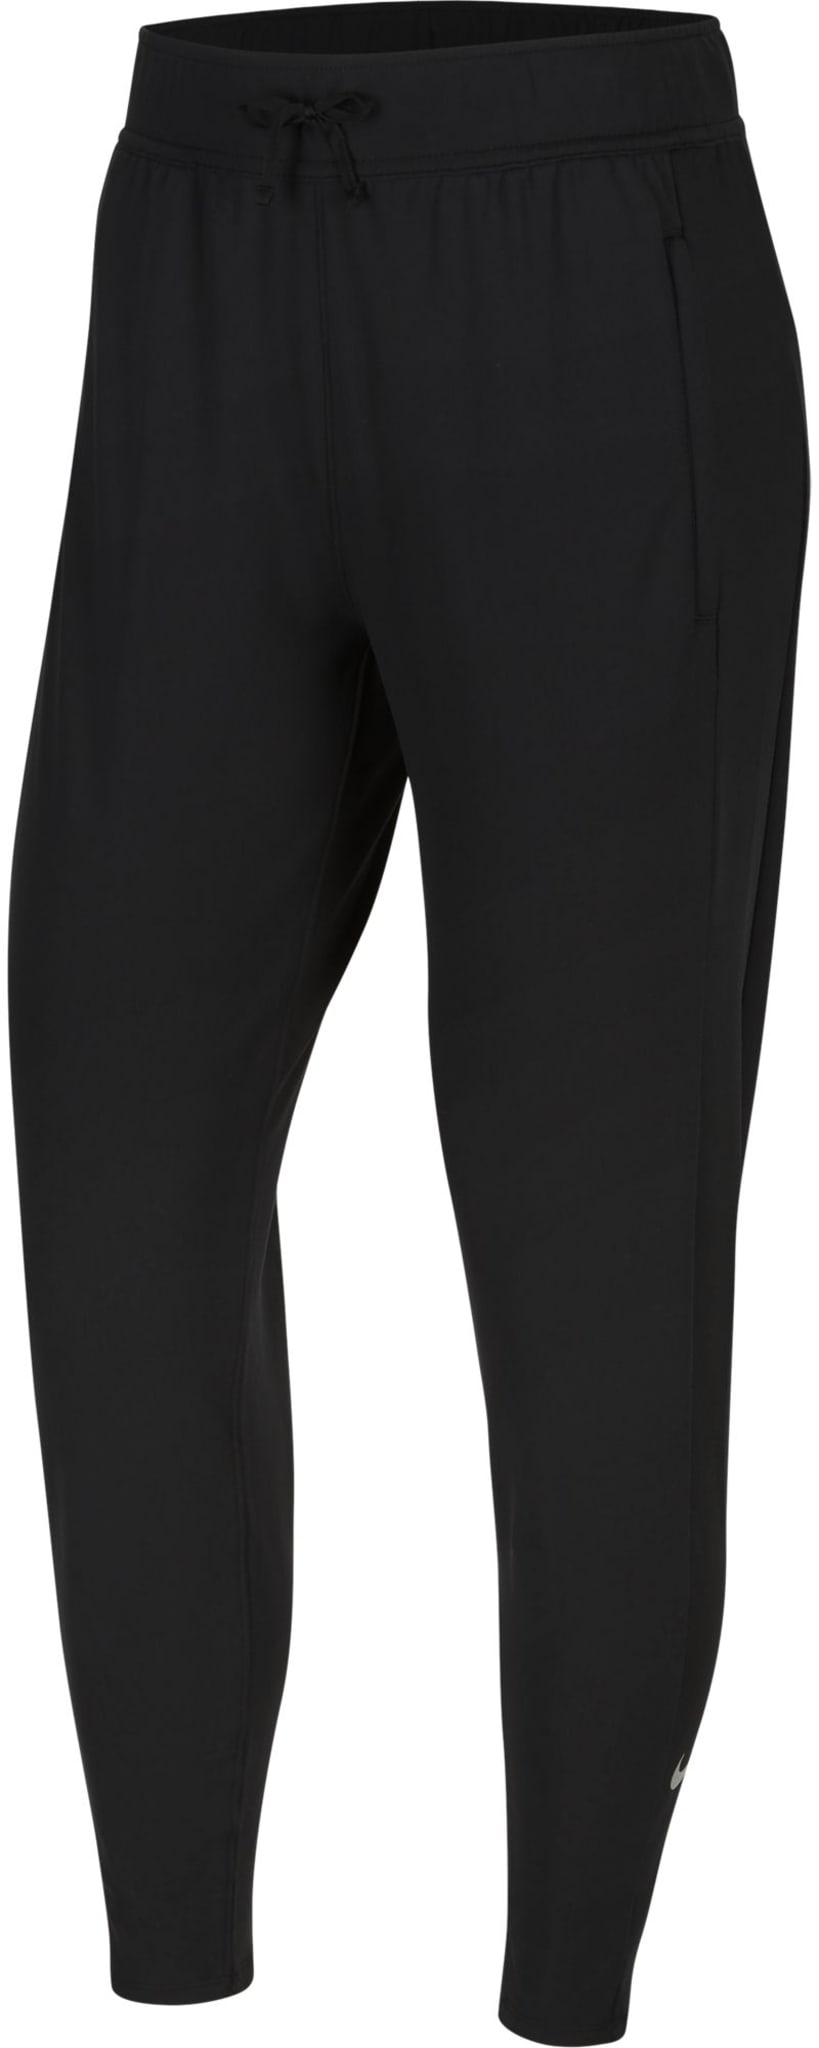 Essential Warm Running Pant W